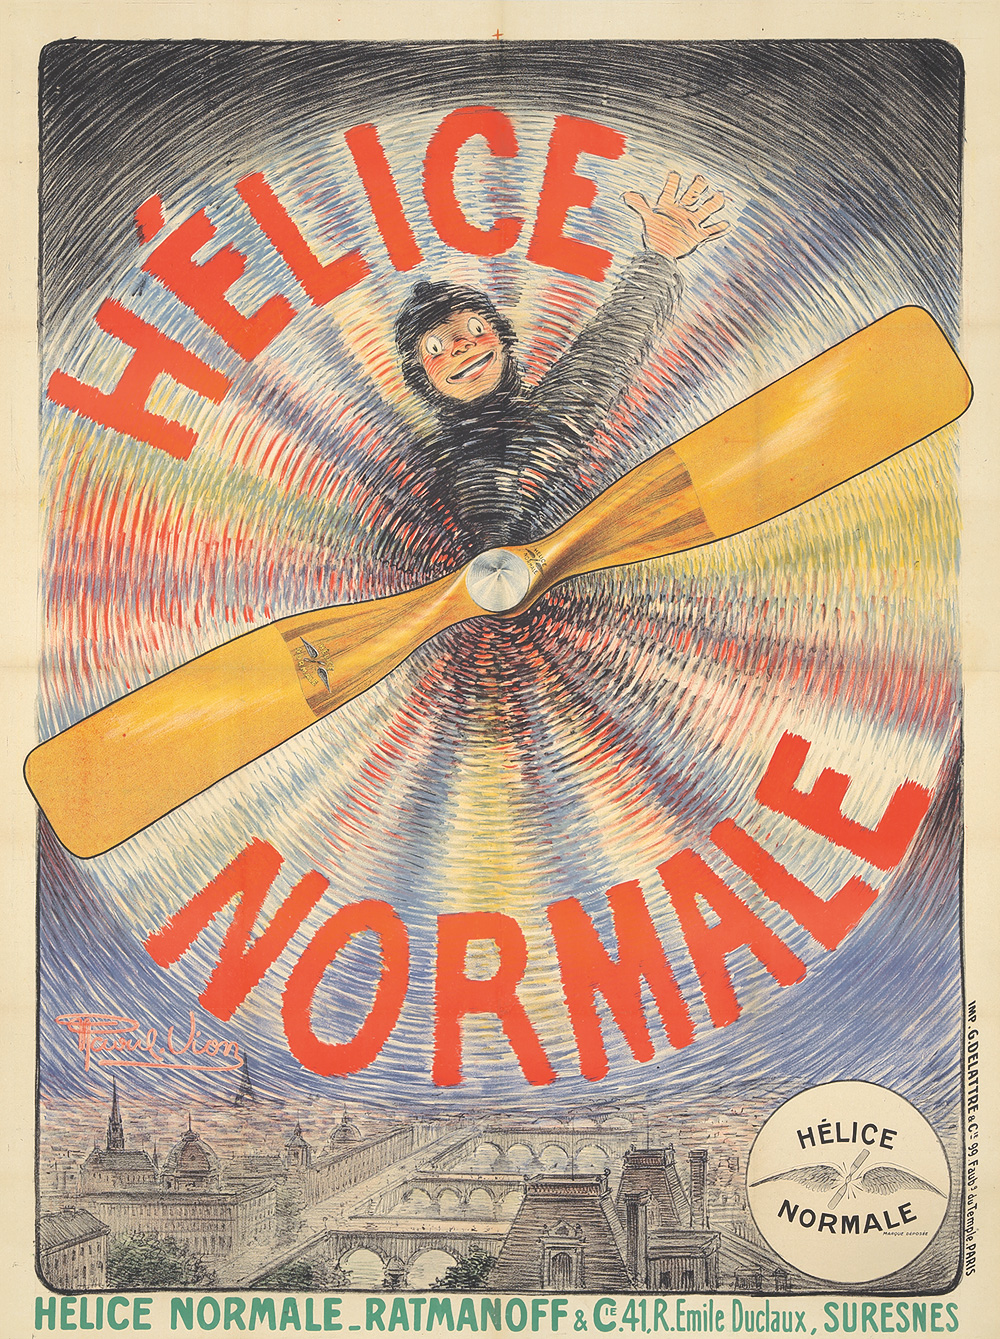 69. Helice Normale. 1909.